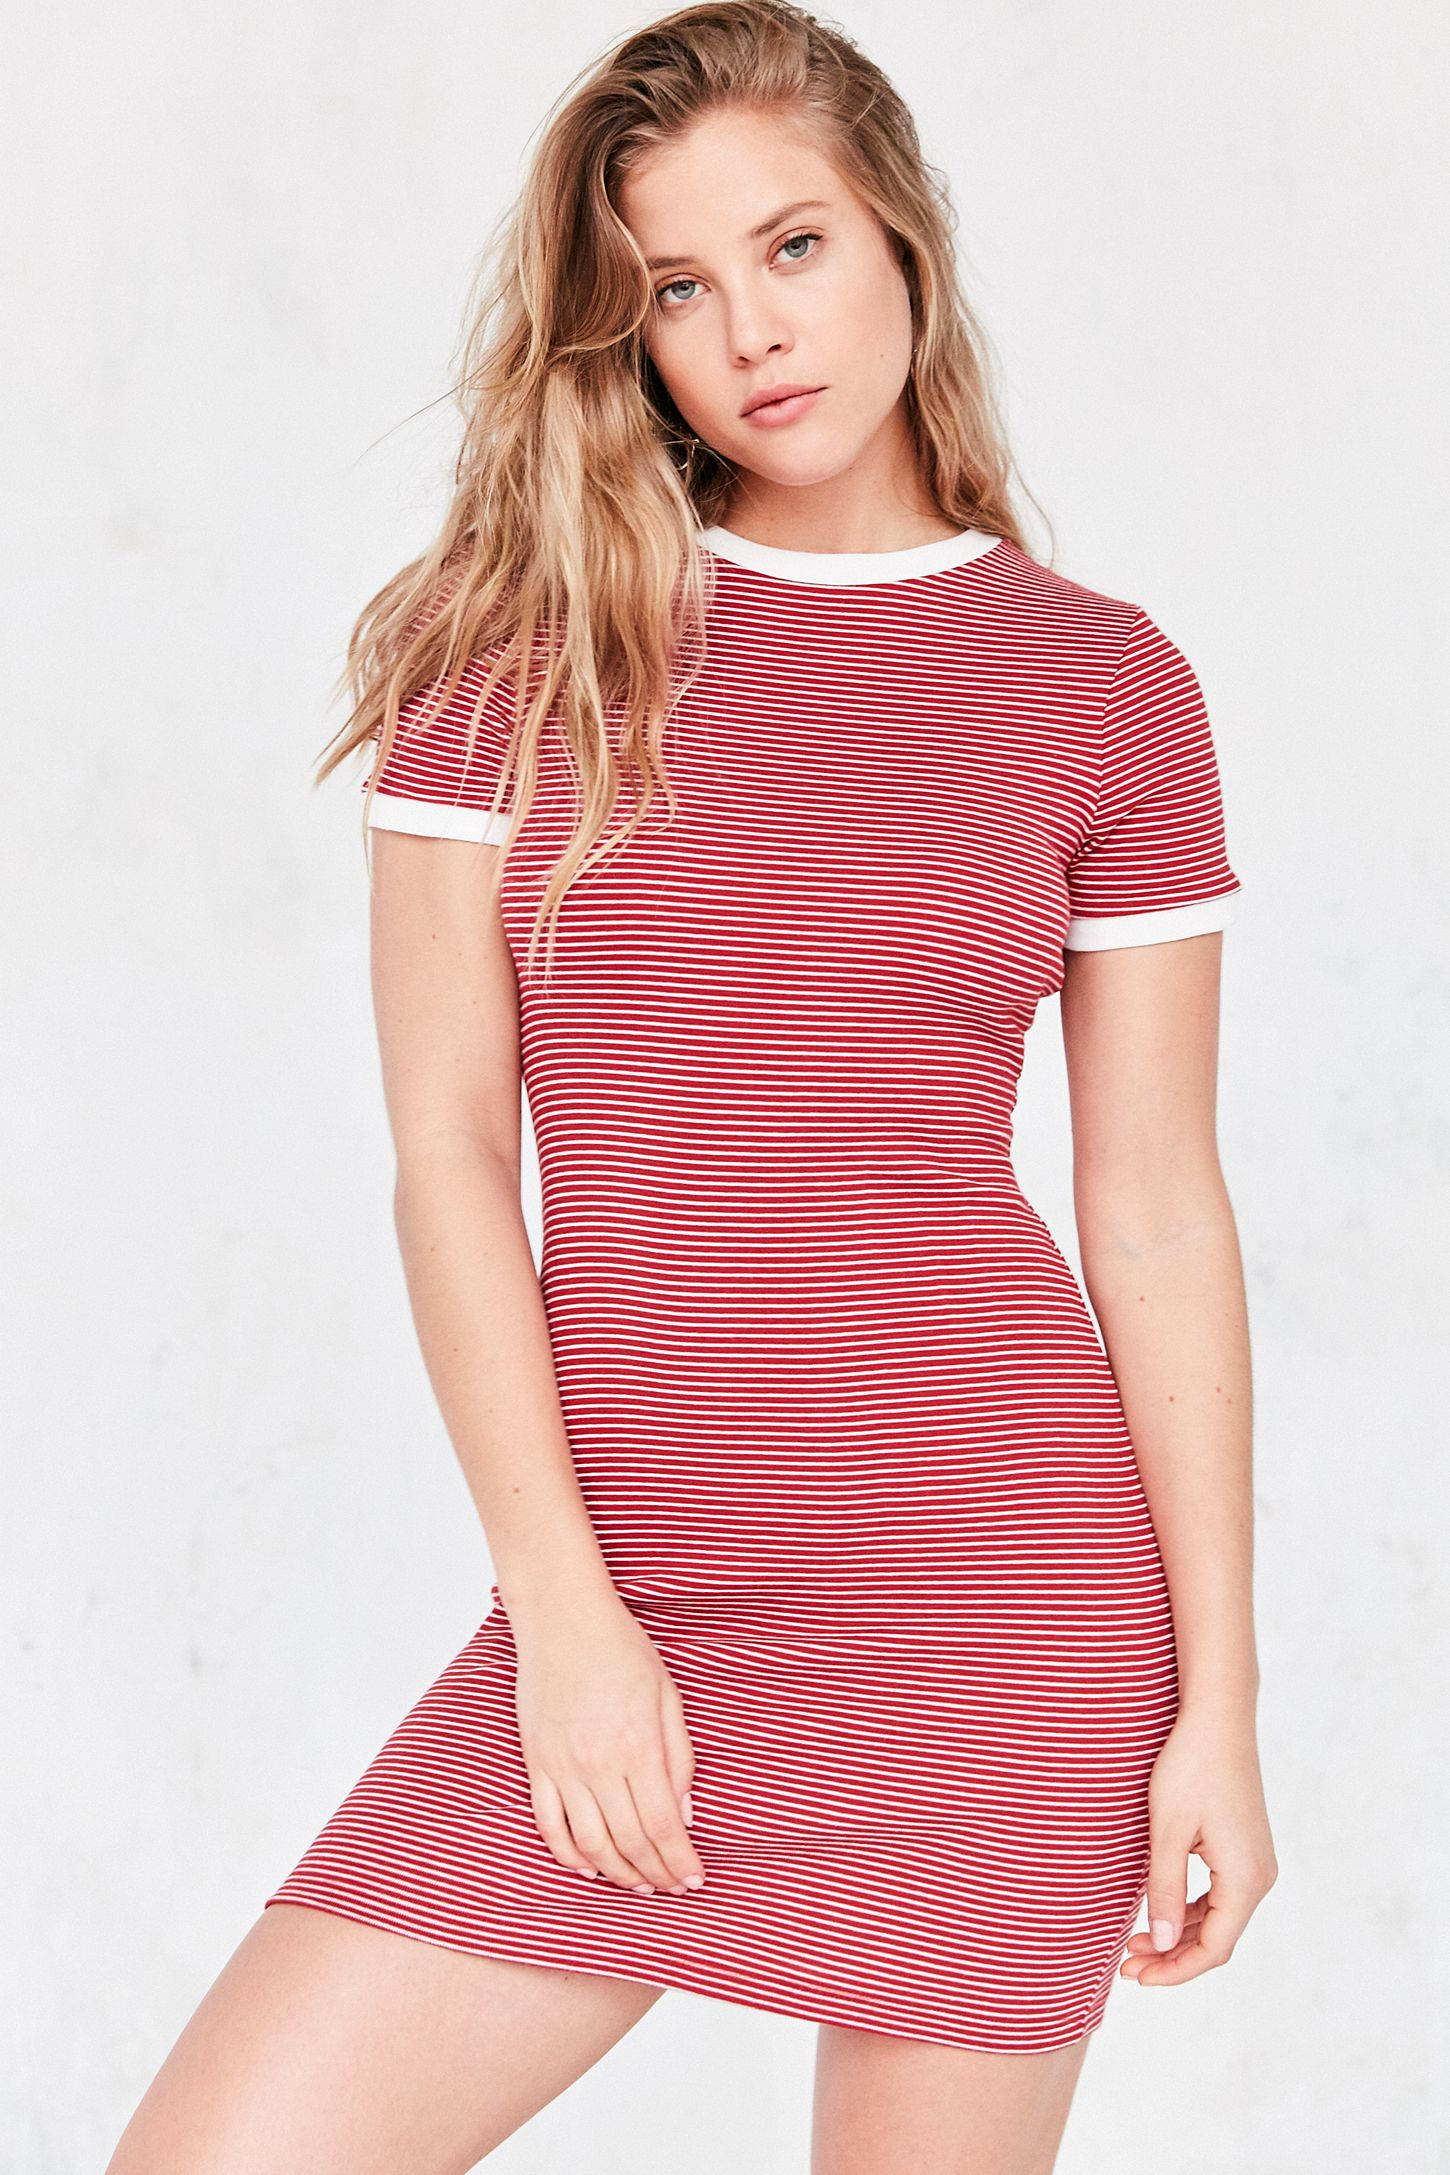 a2d48587a BDG Striped Bodycon T-Shirt Dress | Urban Outfitters Canada